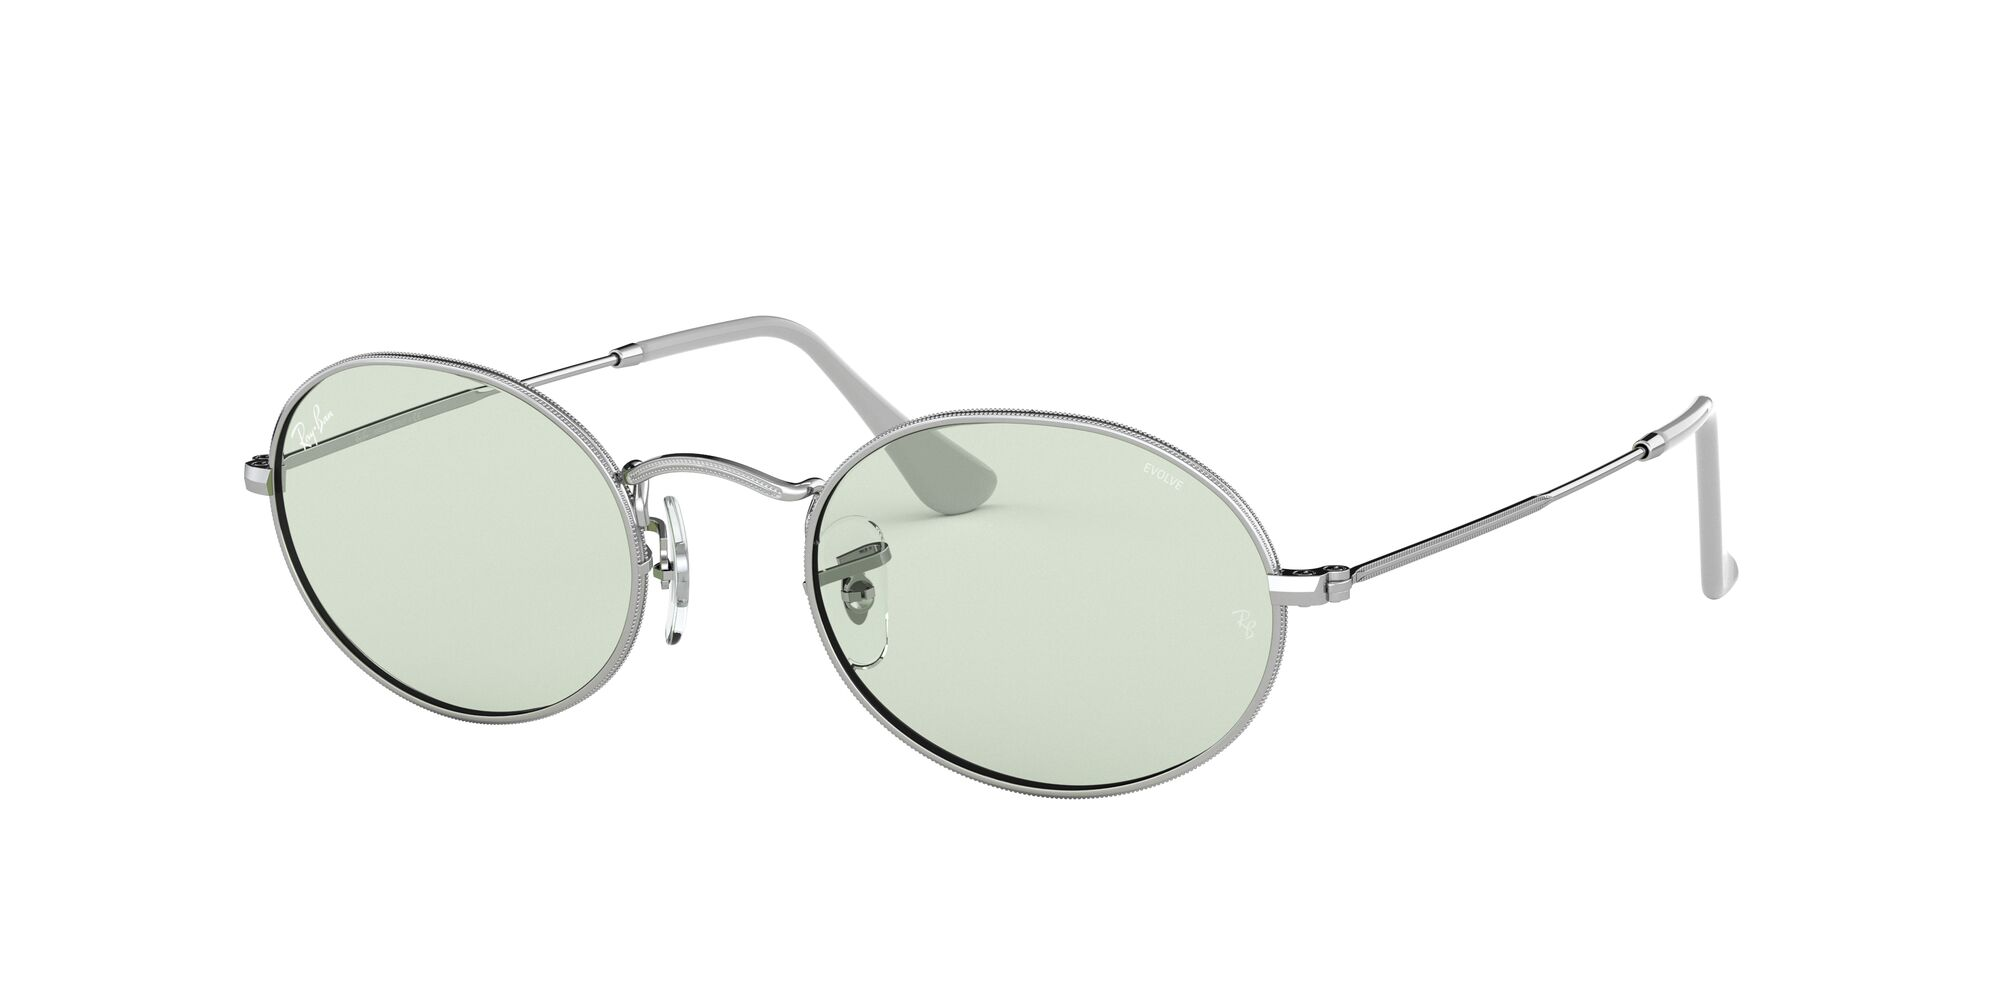 Angle_Left01 Ray-Ban Ray-Ban 0RB3547 003/T1 53/21 Zilver/Groen